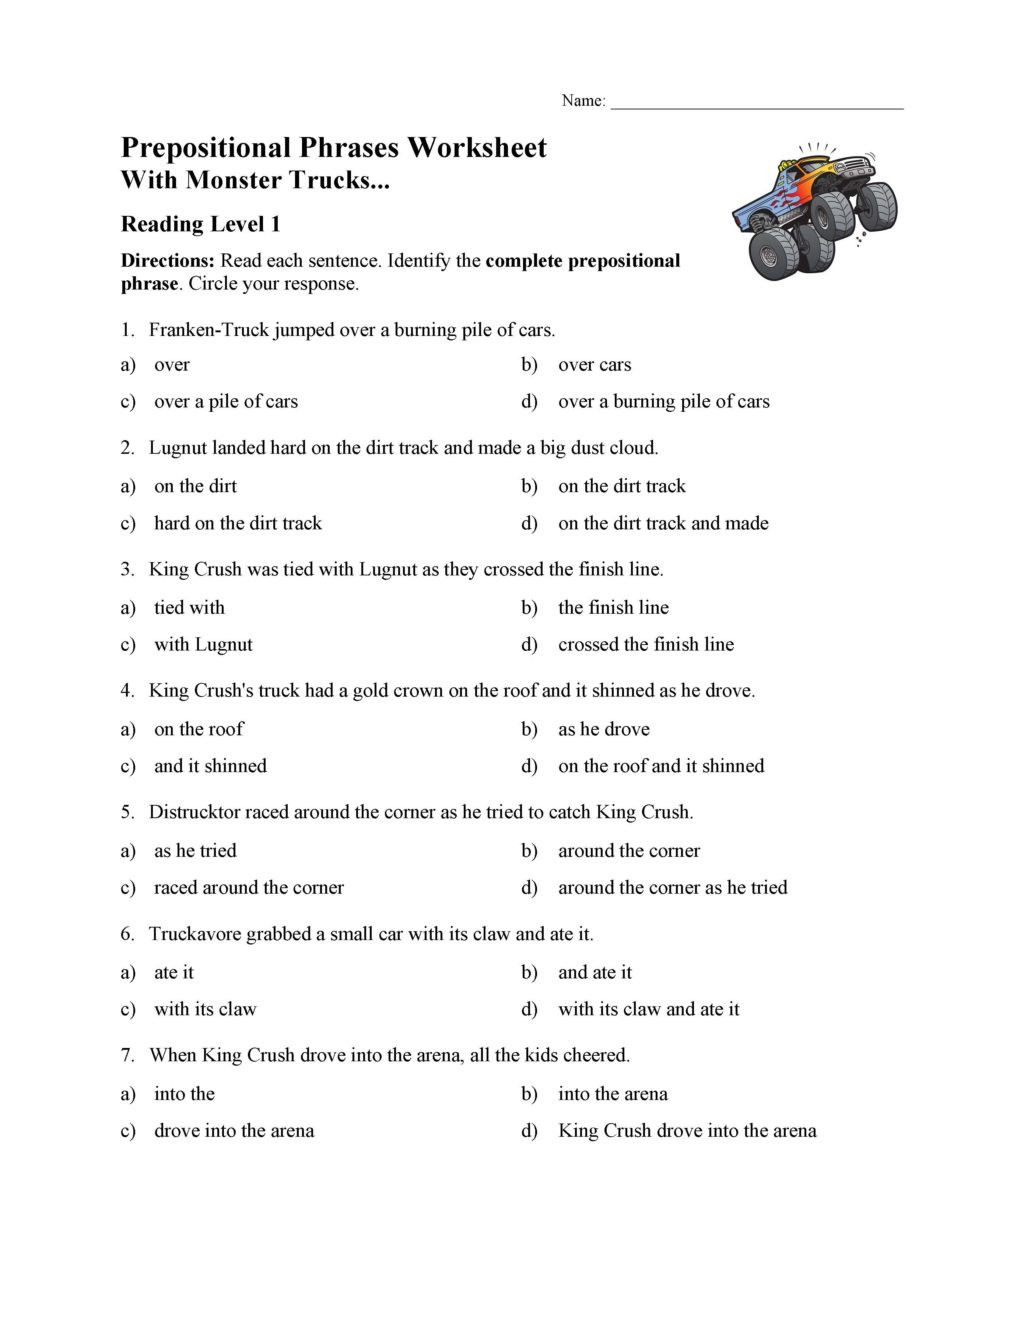 Preposition Worksheets for Grade 1 Worksheet Prepositional Phrases Worksheeteading Level